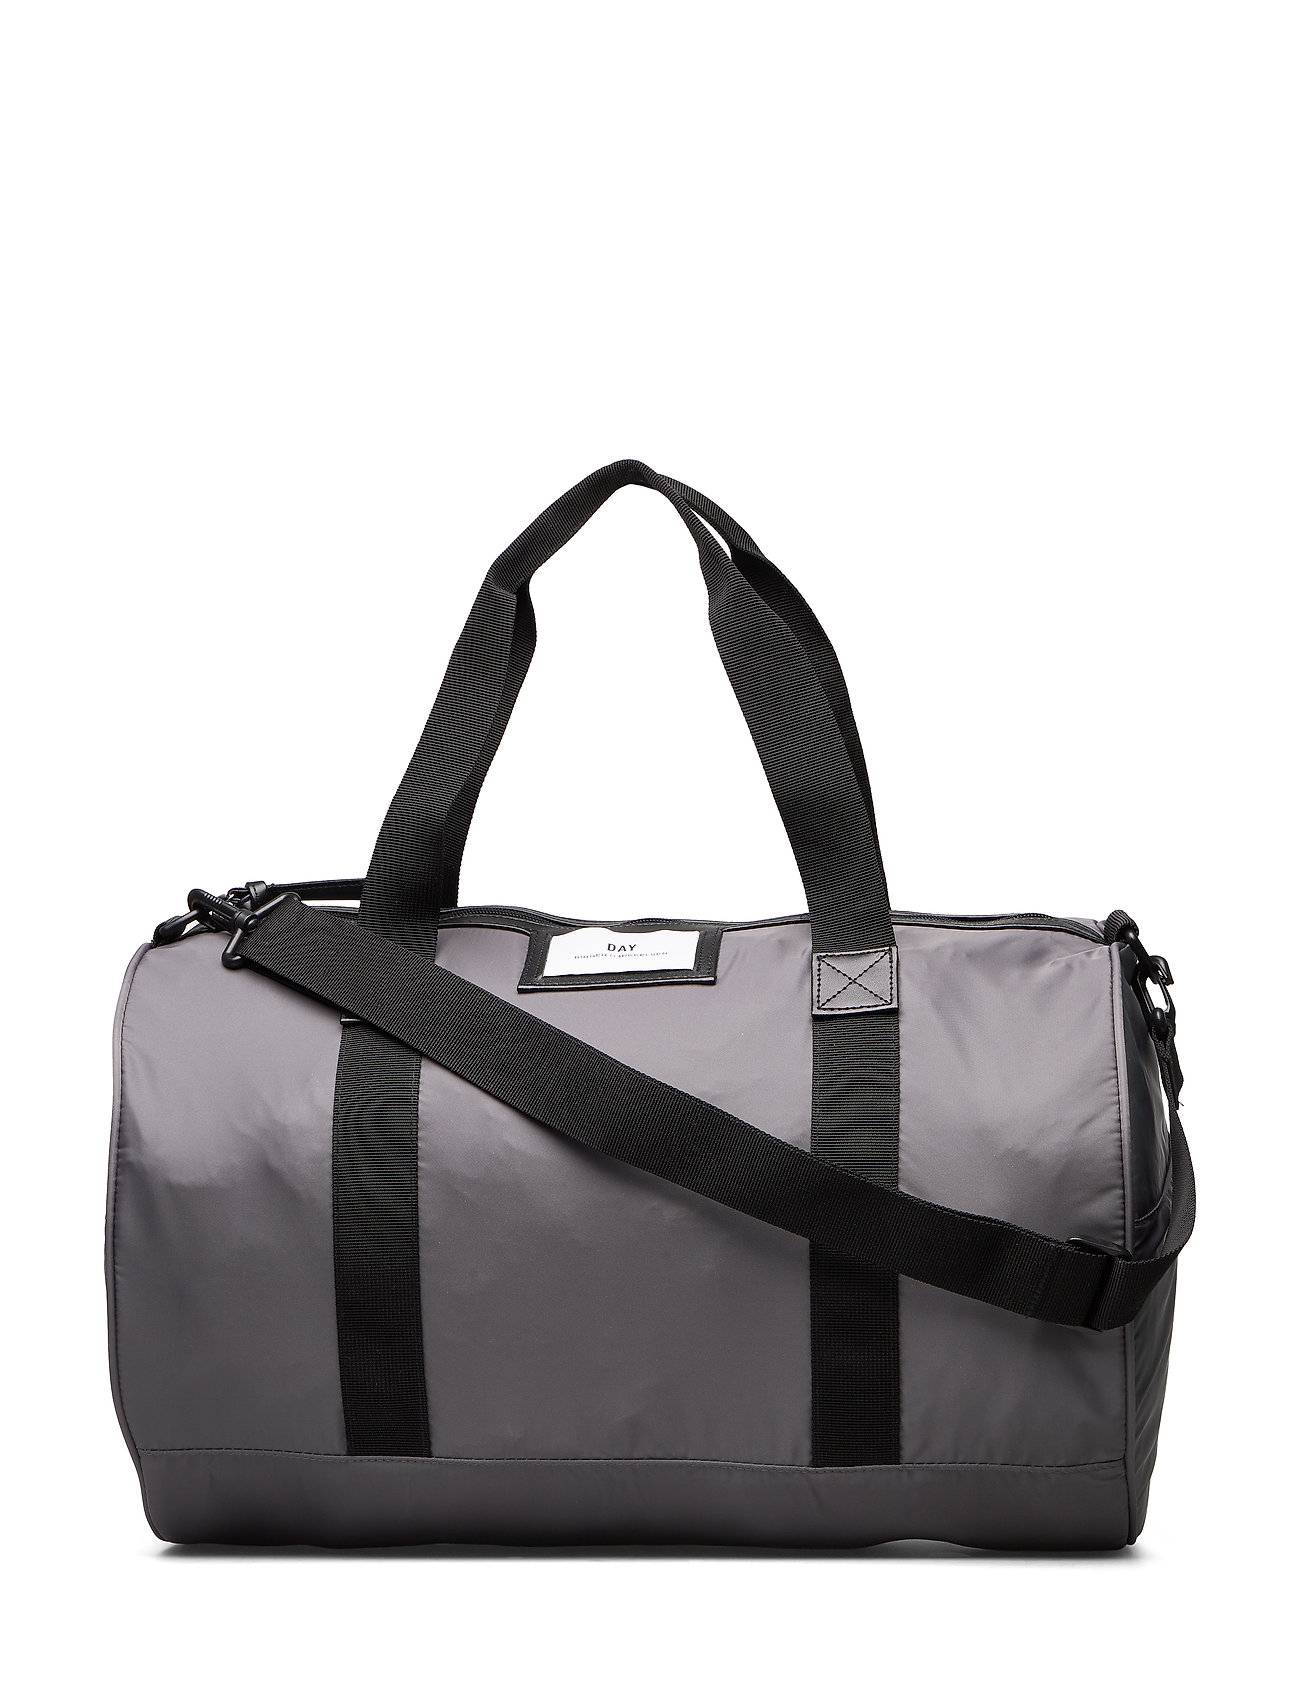 DAY et Day Gweneth Sport Bags Weekend & Gym Bags Harmaa DAY Et